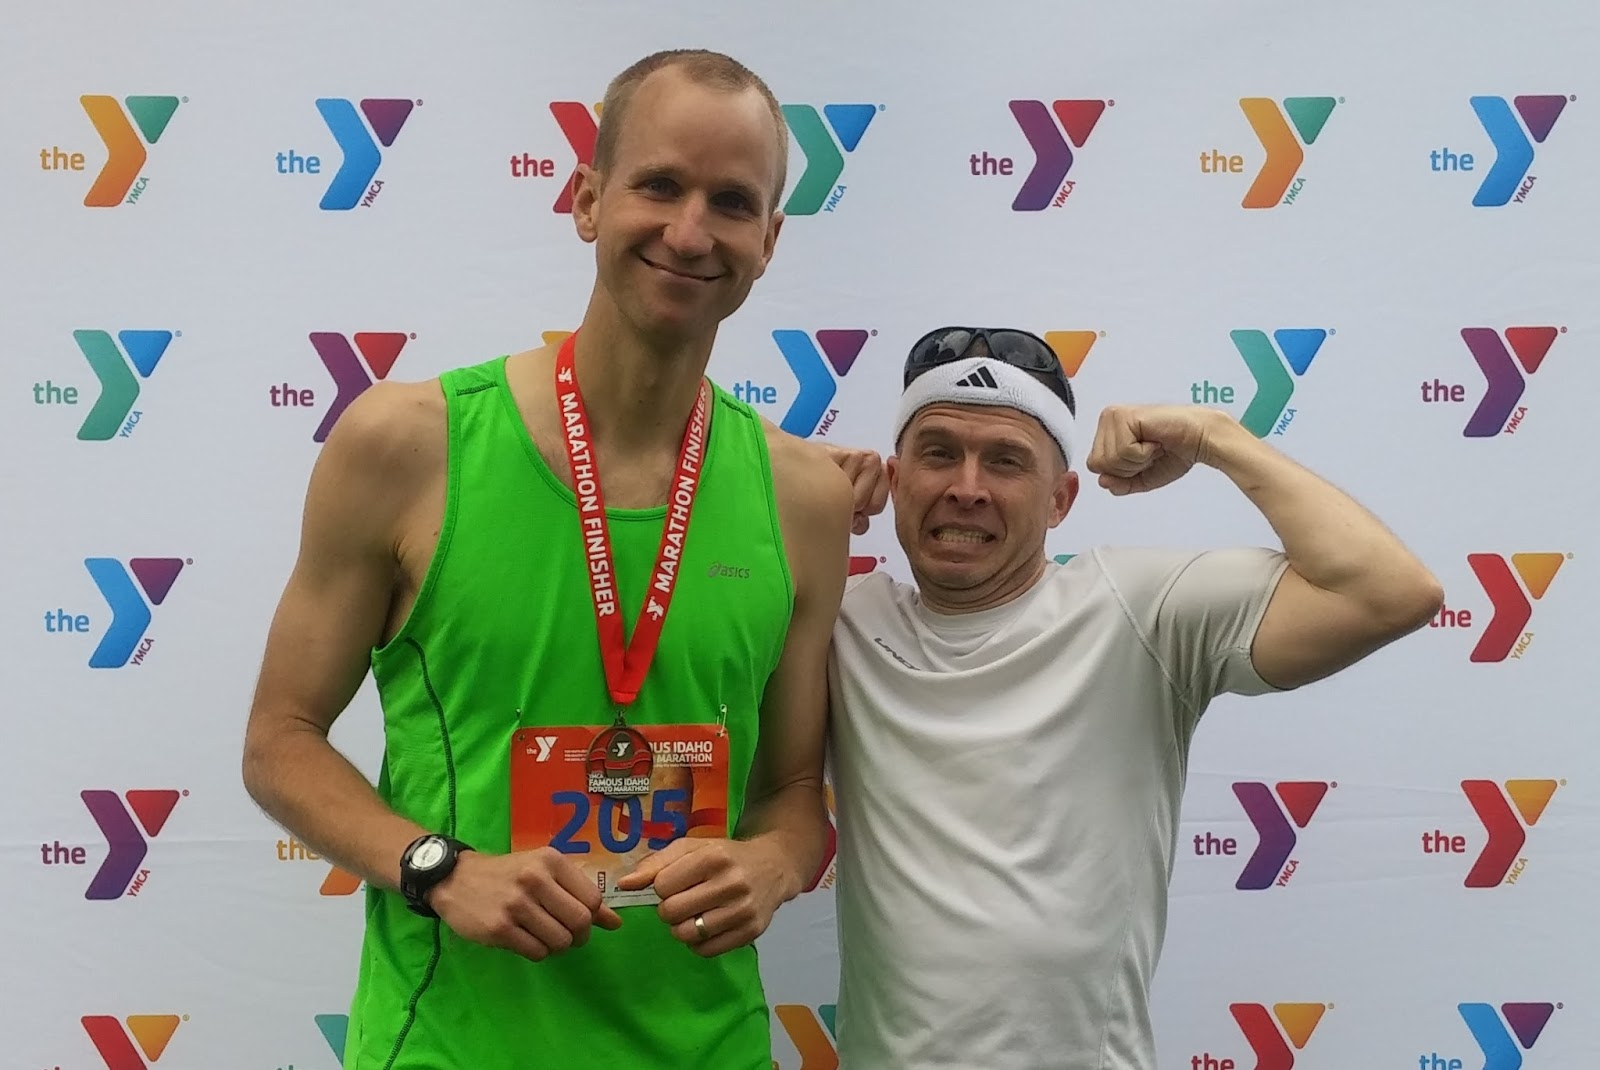 Post race photo with Greg.